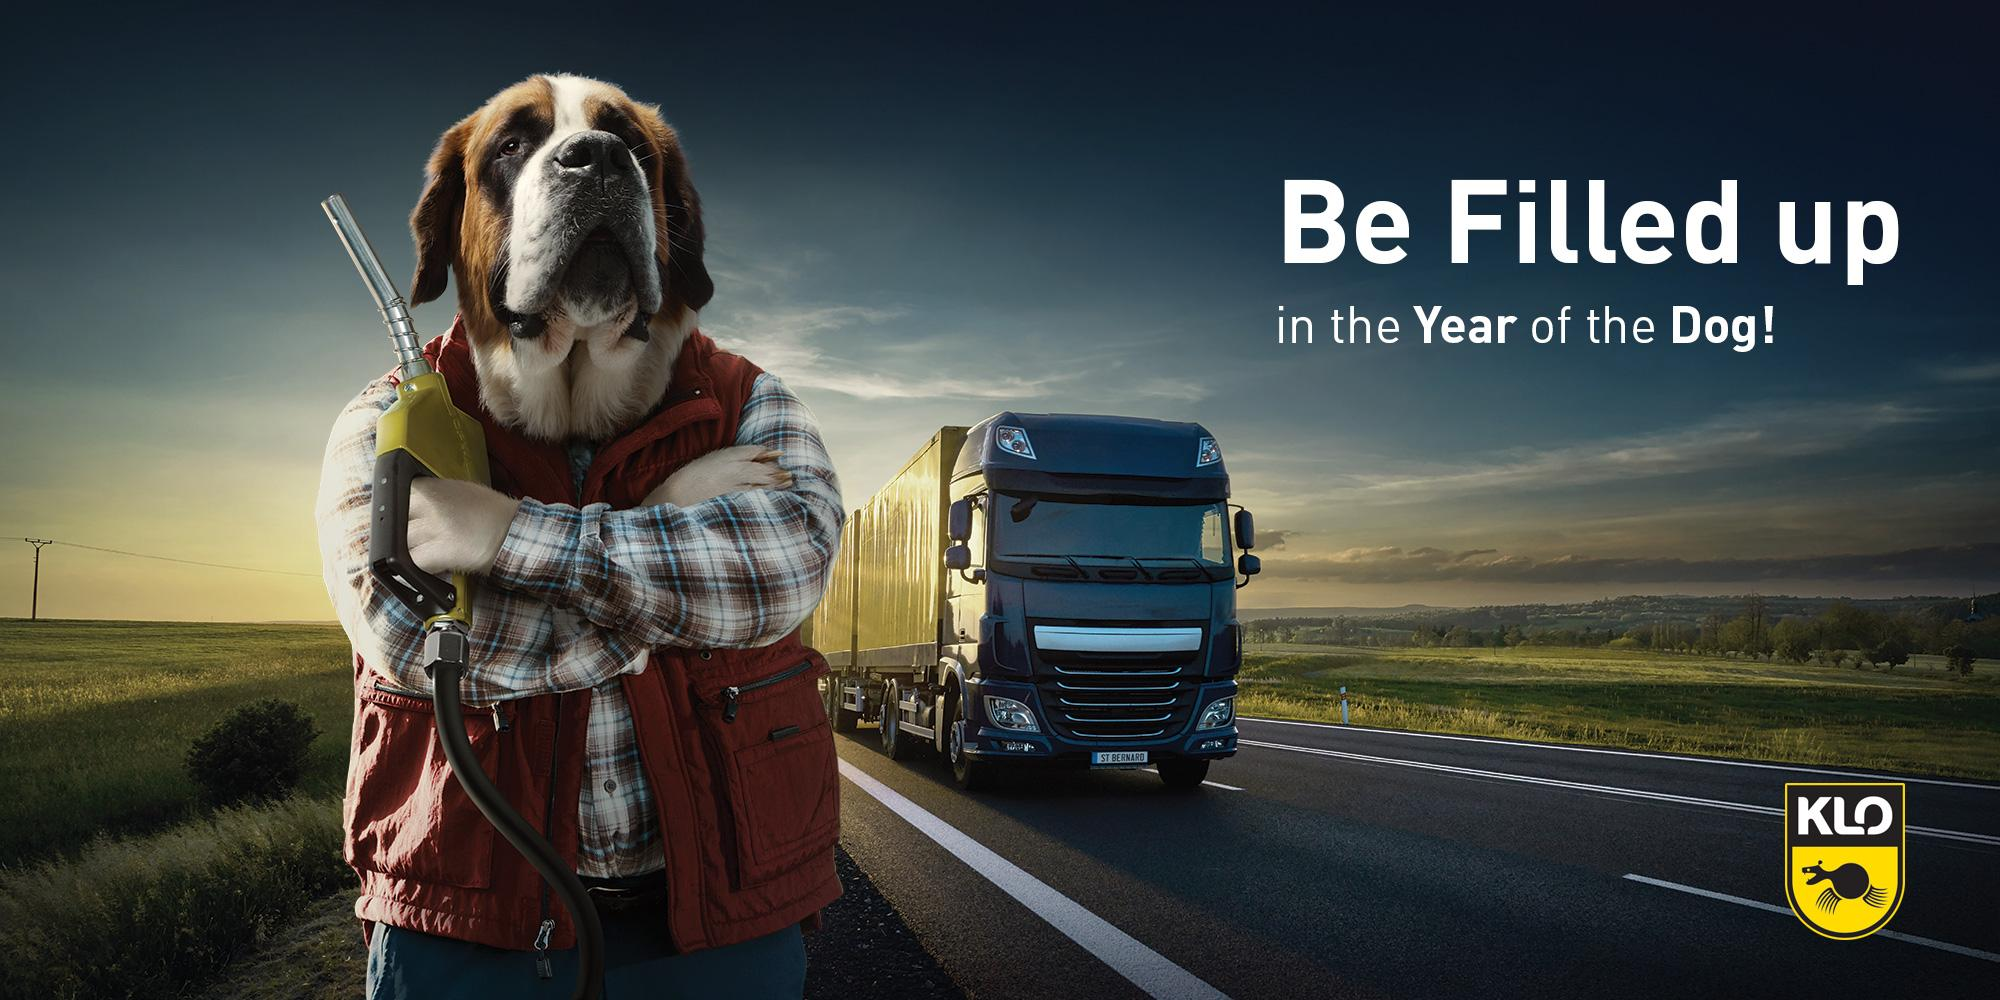 KLO Print Ad - Dogs, 3